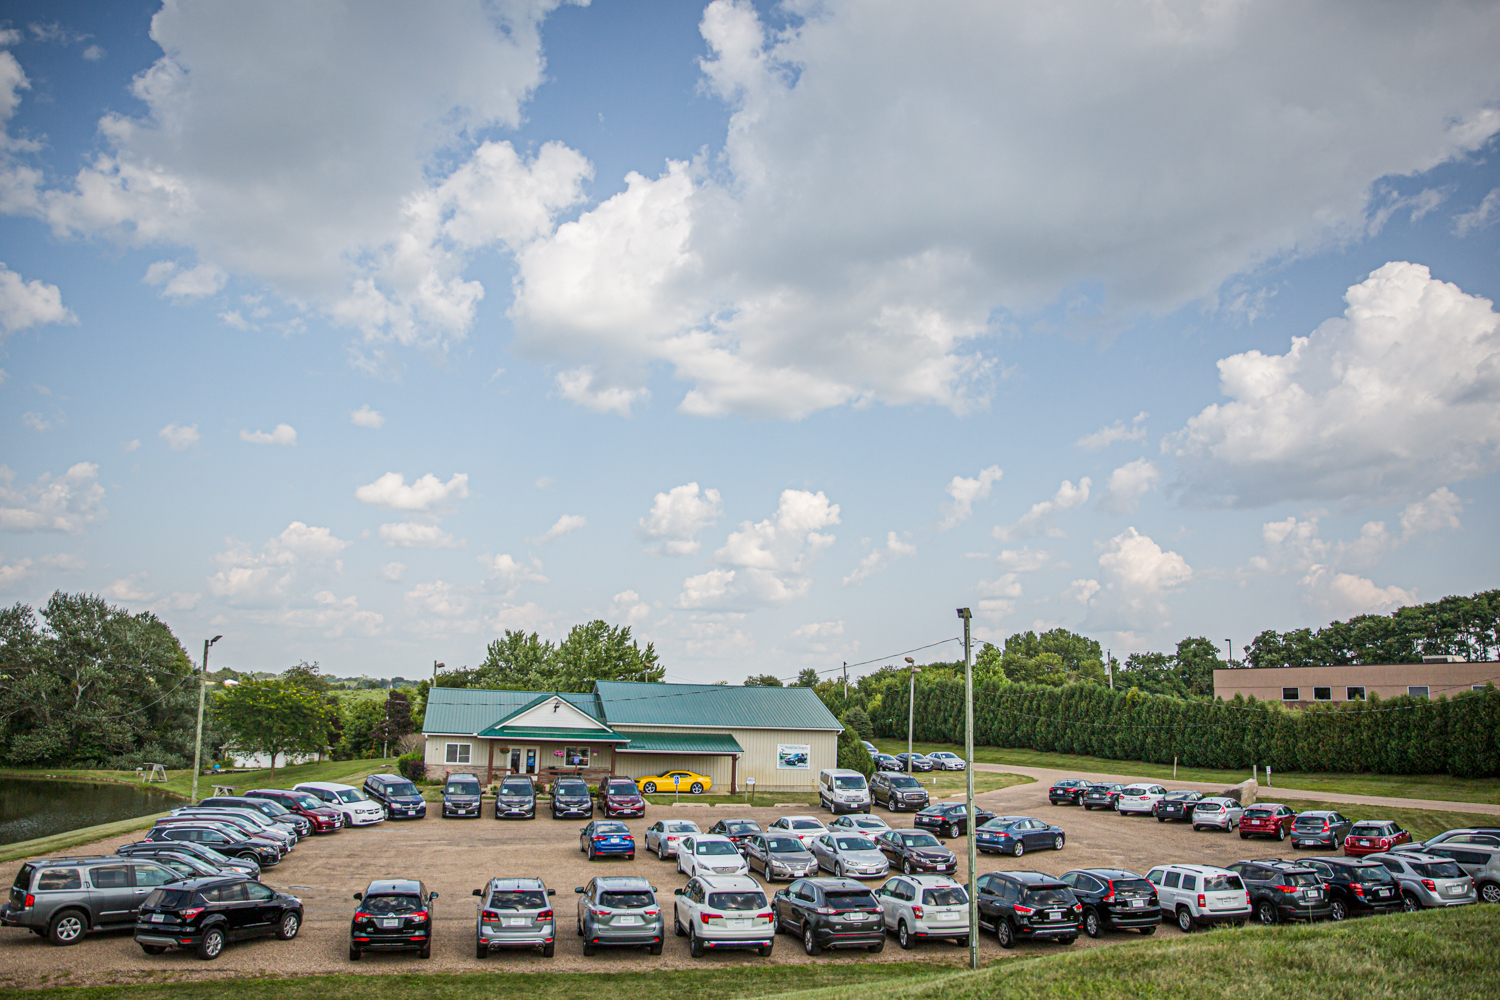 Photo of the entire selection of preowned minivans, crossovers, trucks, SUVs and cars at Warehouse Auto near Cedar Rapids and Iowa city